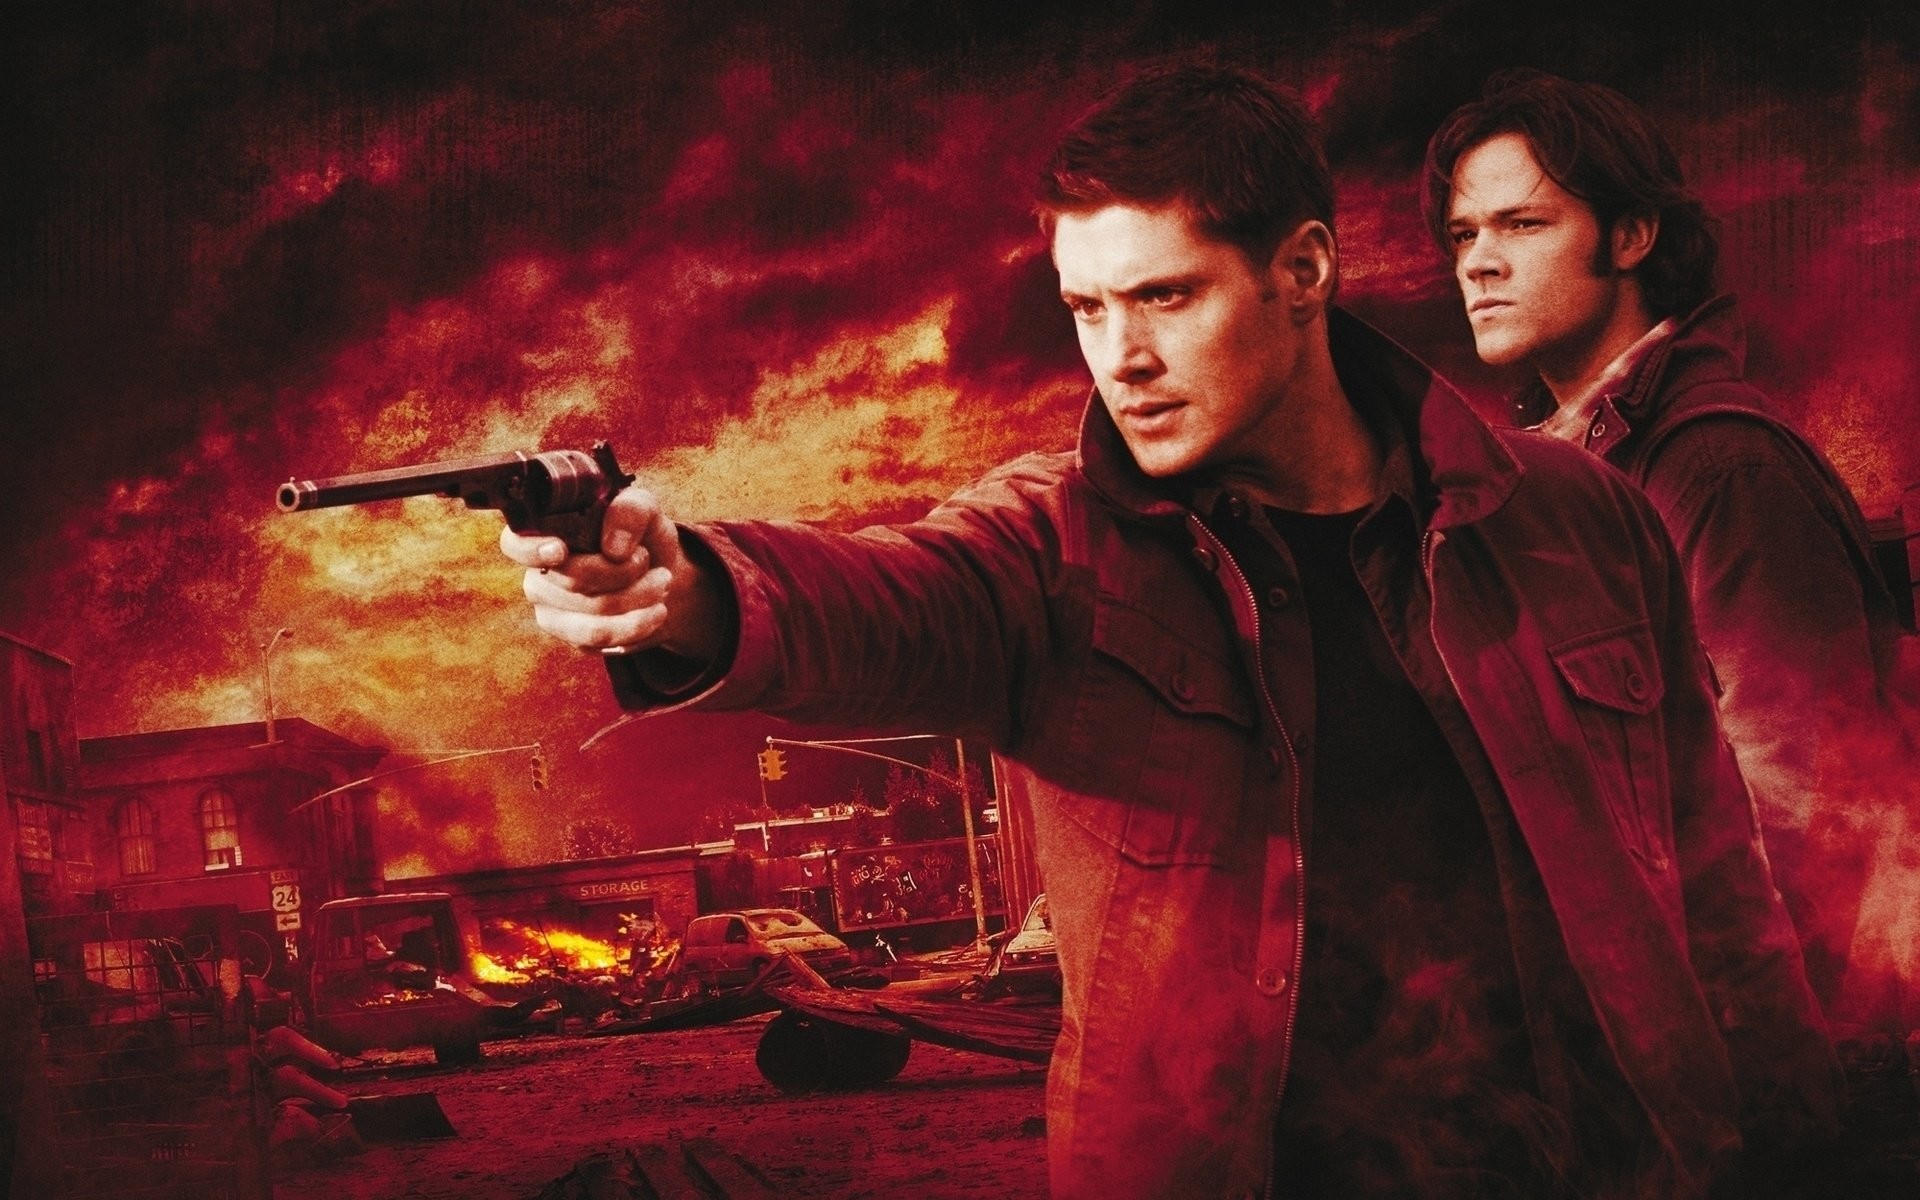 Supernatural season 5 wallpaper 68 images 1920x1200 hd wallpaper background id264700 voltagebd Image collections